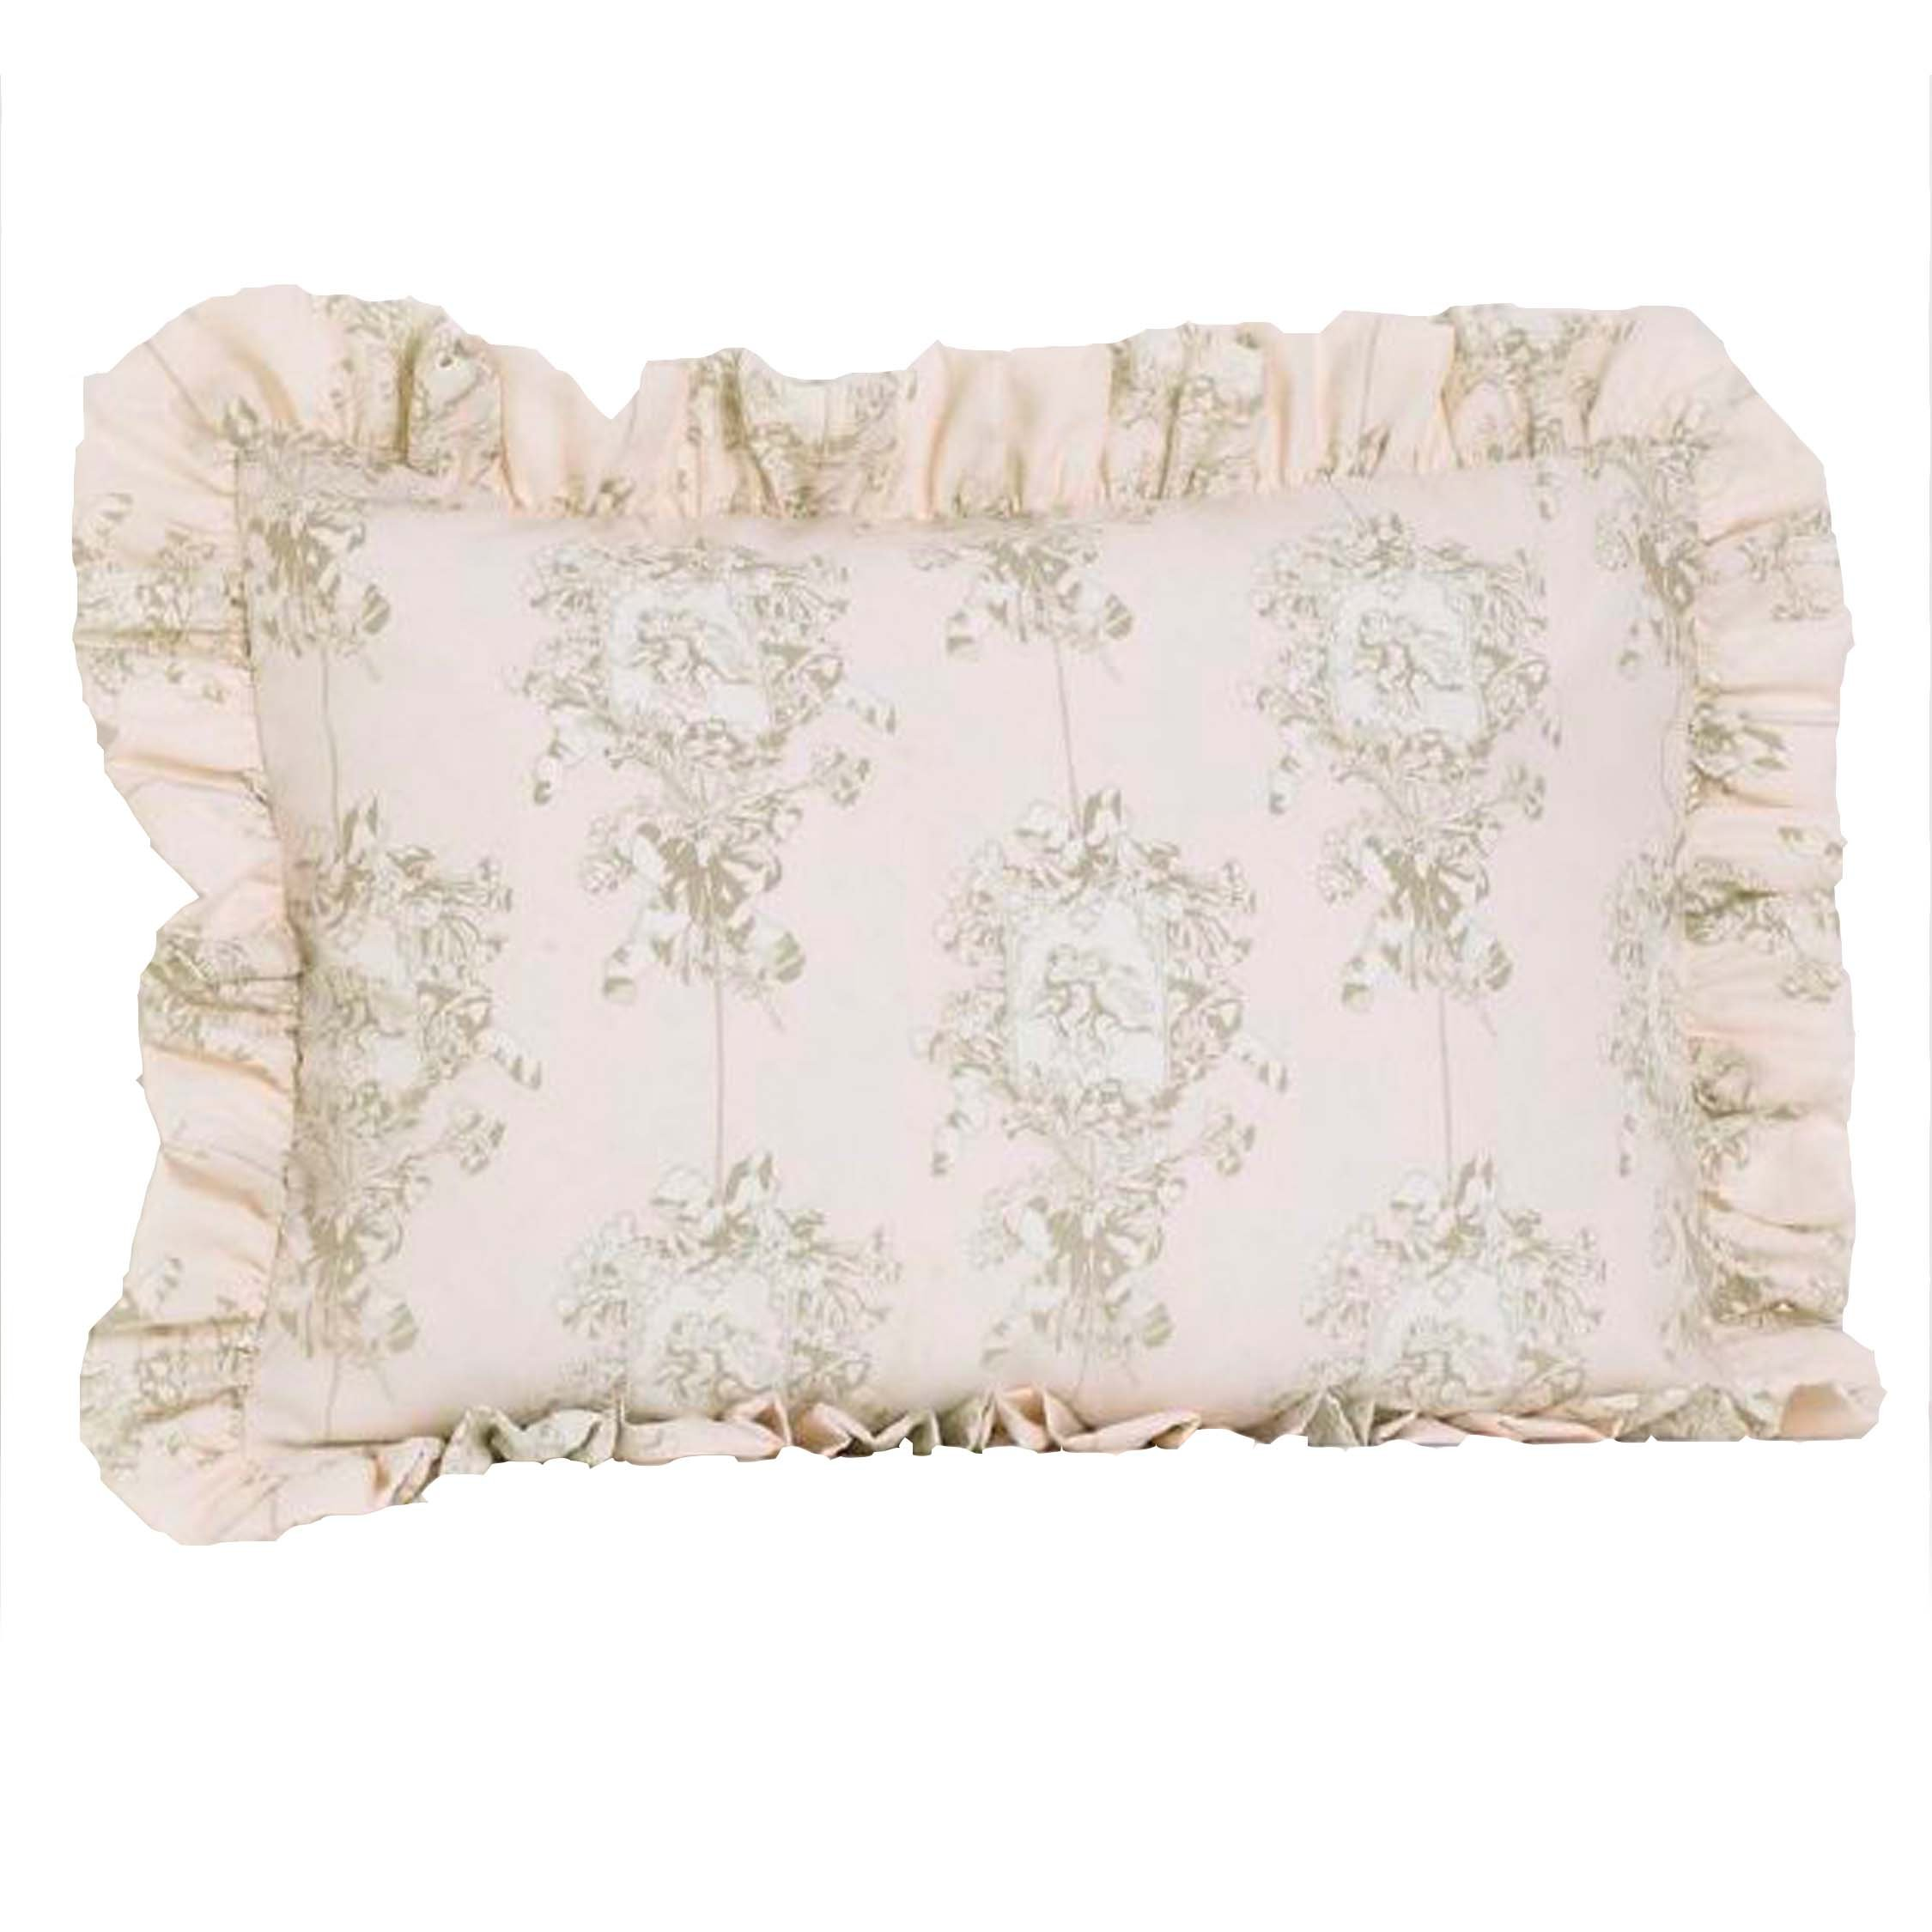 Cotton Tale Designs 100% Cotton Pink, Cream/Off White, Tan Floral Angel Toile Lollipops & Roses Standard Ruffled Pillow Sham - Girl - Pillow Cover